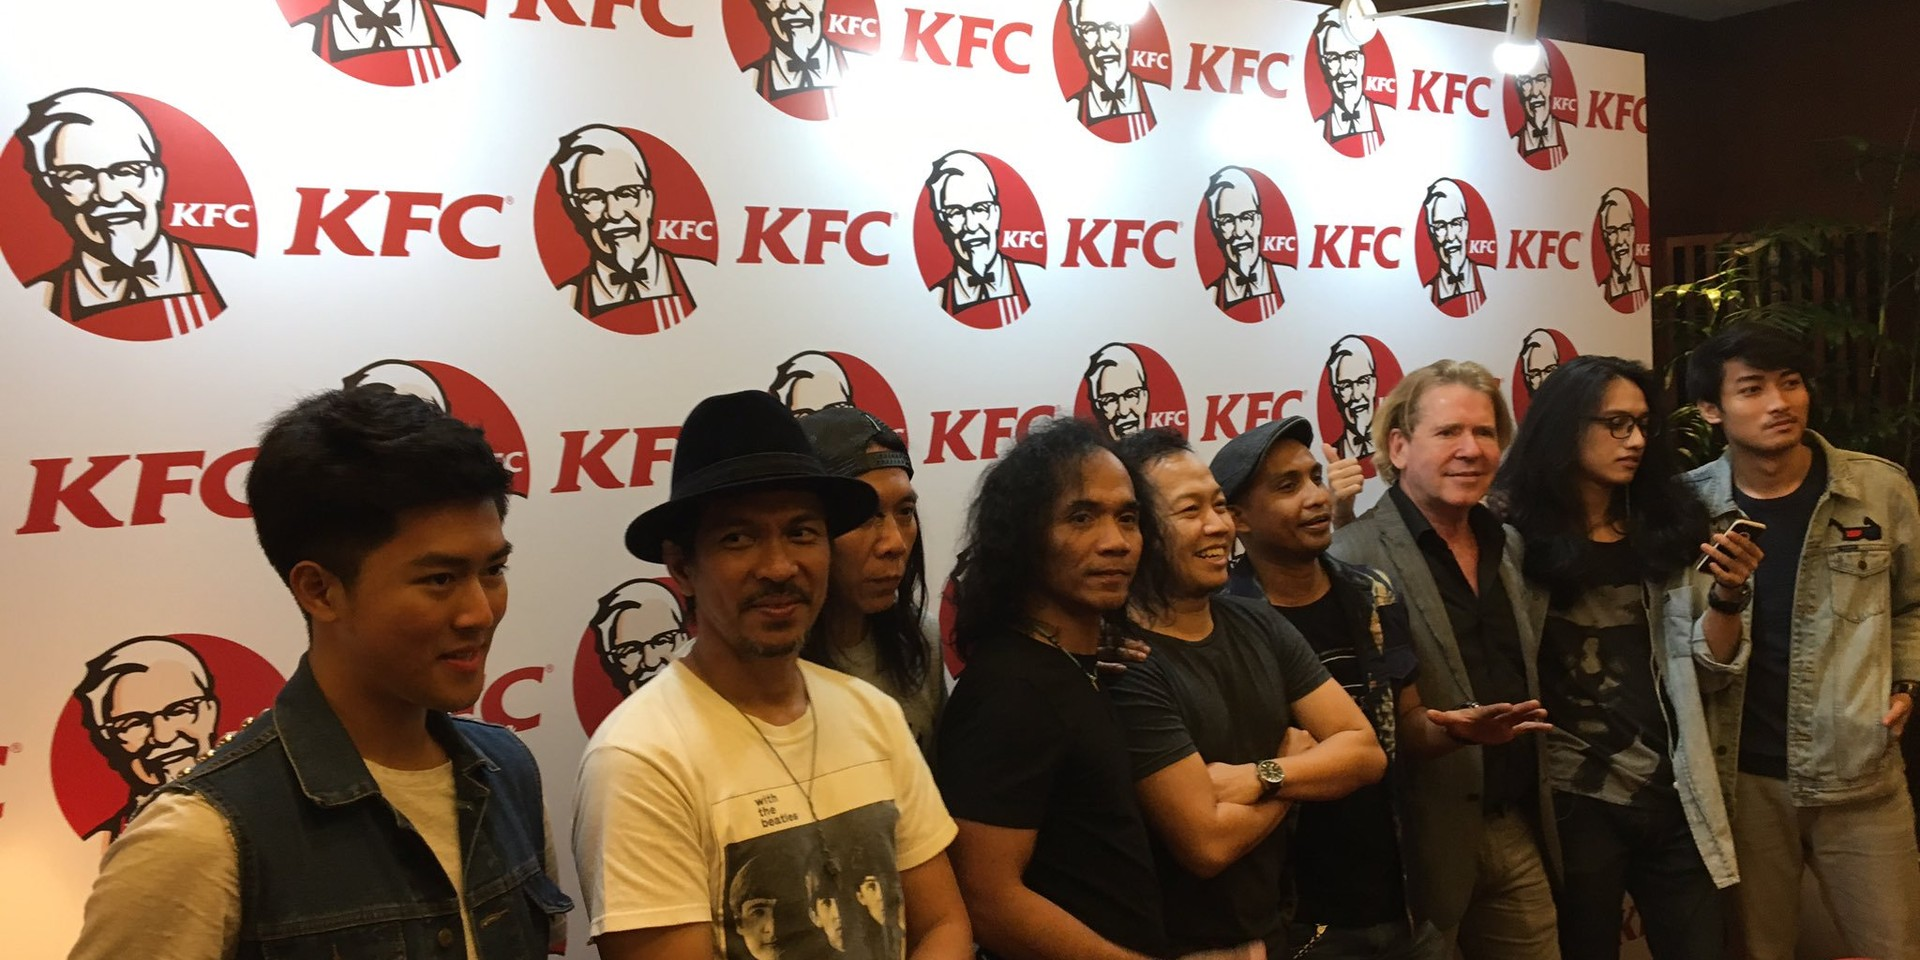 U2 producer Steve Lillywhite now sells CDs in Indonesia through KFCs